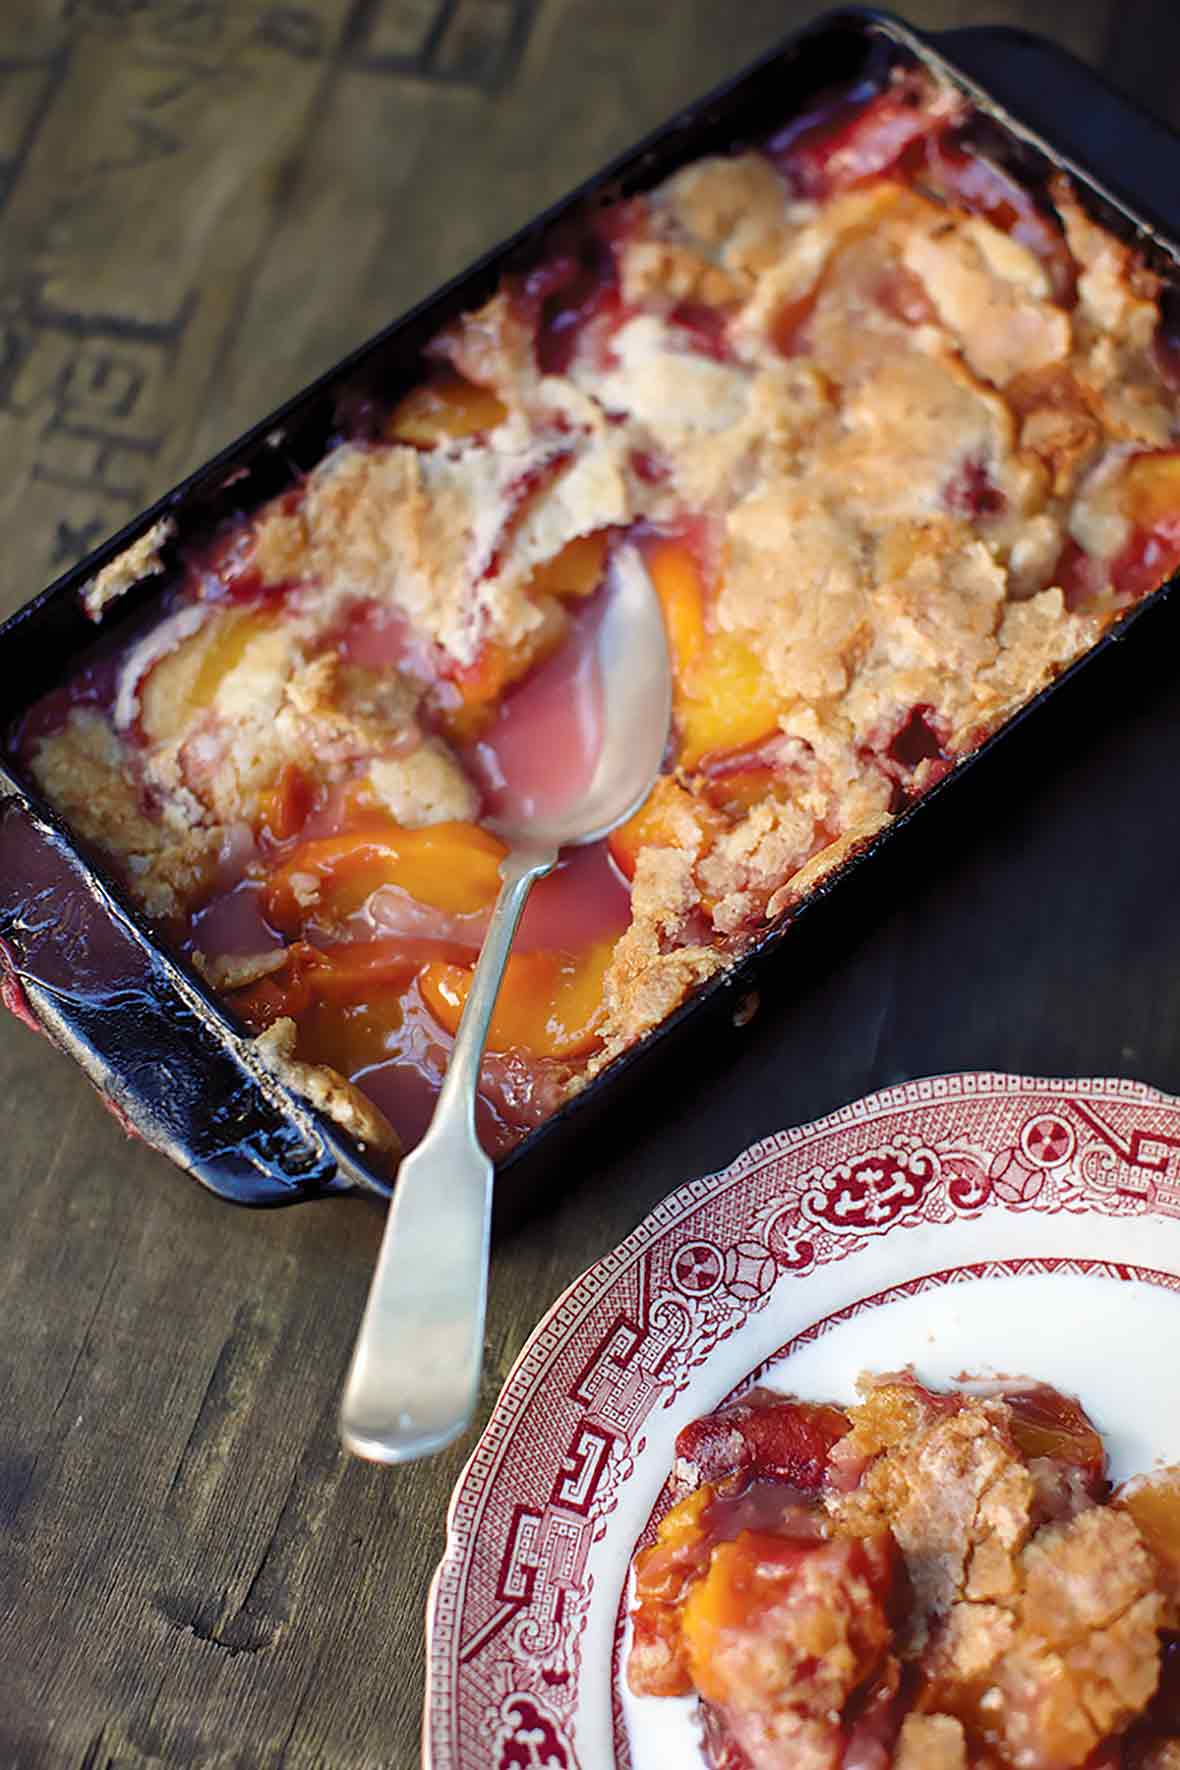 Forum on this topic: Chef Richards Cherry-Filled Baked Peach With Pie , chef-richards-cherry-filled-baked-peach-with-pie/